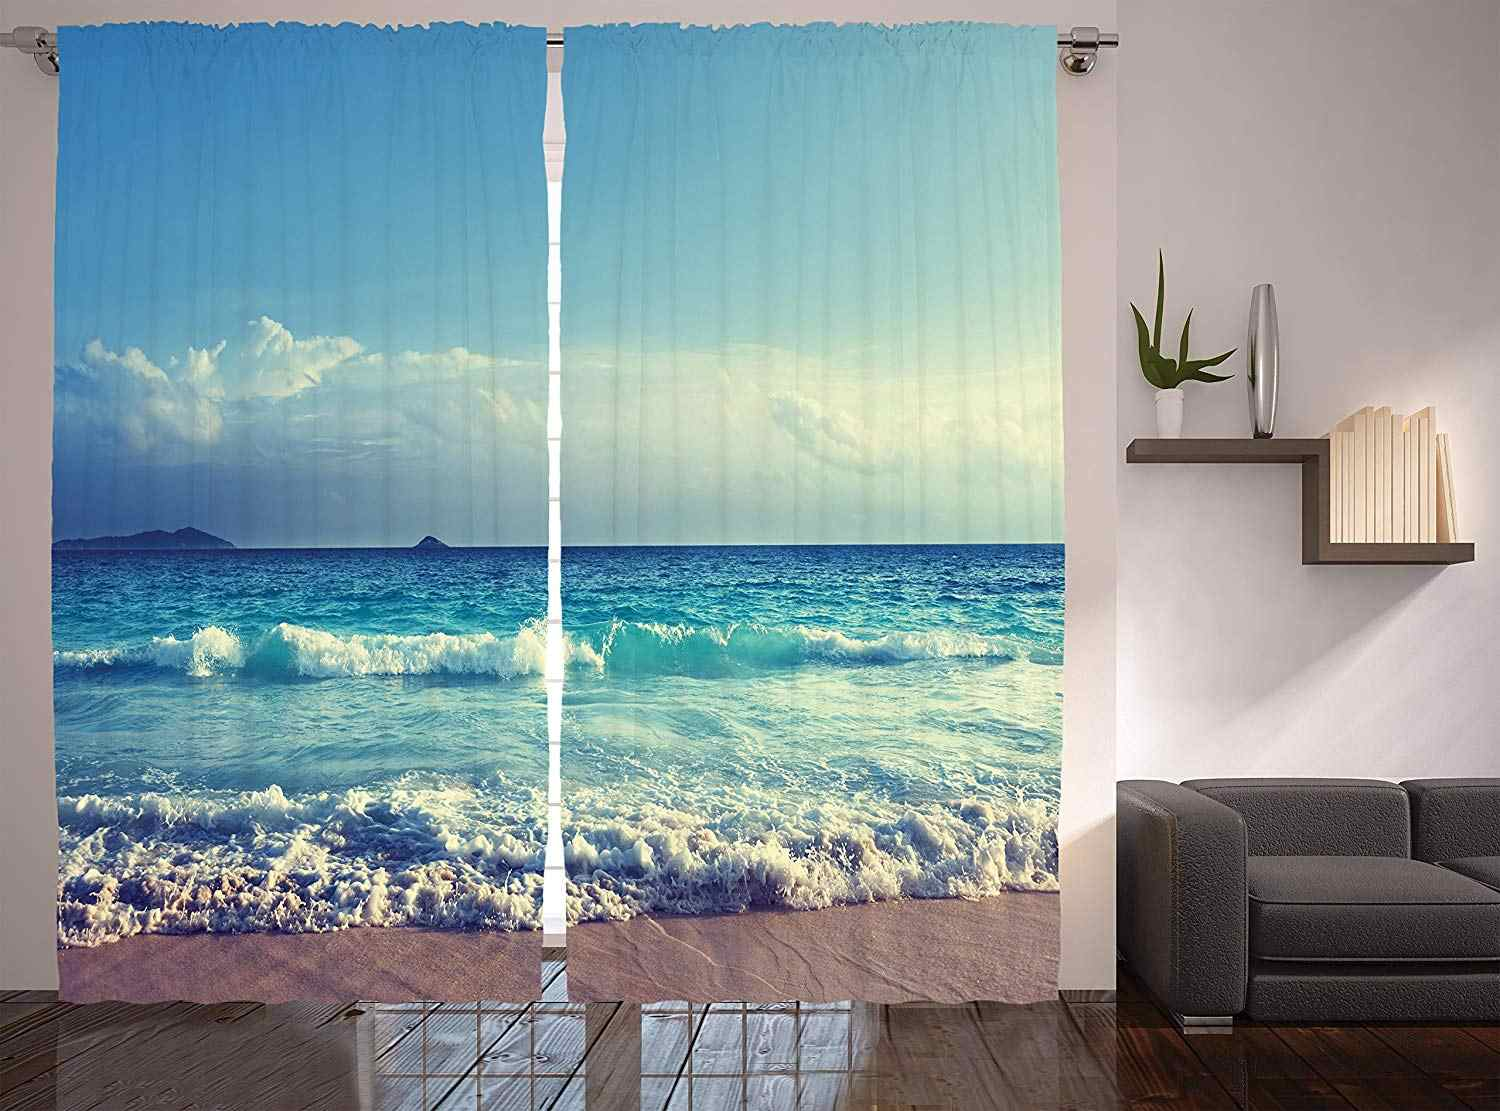 Tropical Island Decor Curtains Ocean Waves Seychelles Beach in Sunset Time Window Drapes for Living Room Bedroom